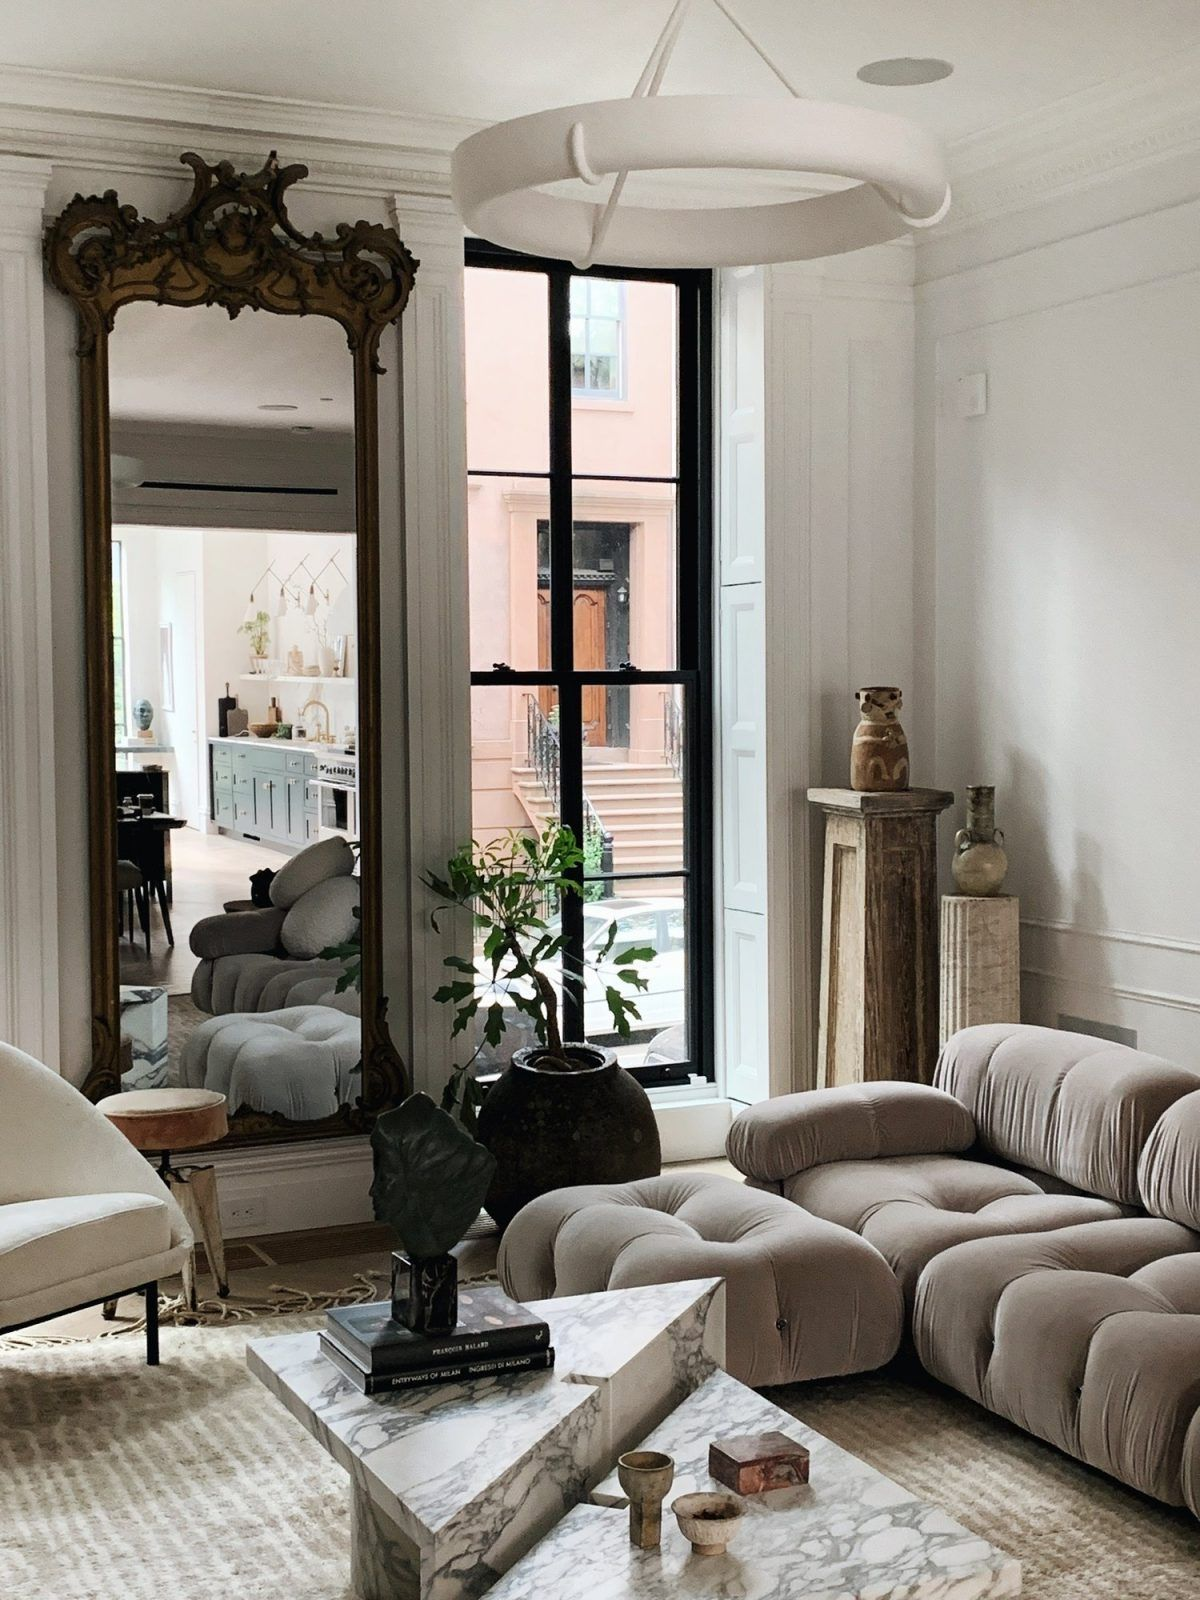 Name To Know Colin King A Nyc Based Interior Stylist In 2020 Interior House Interior Interior Design Living Room